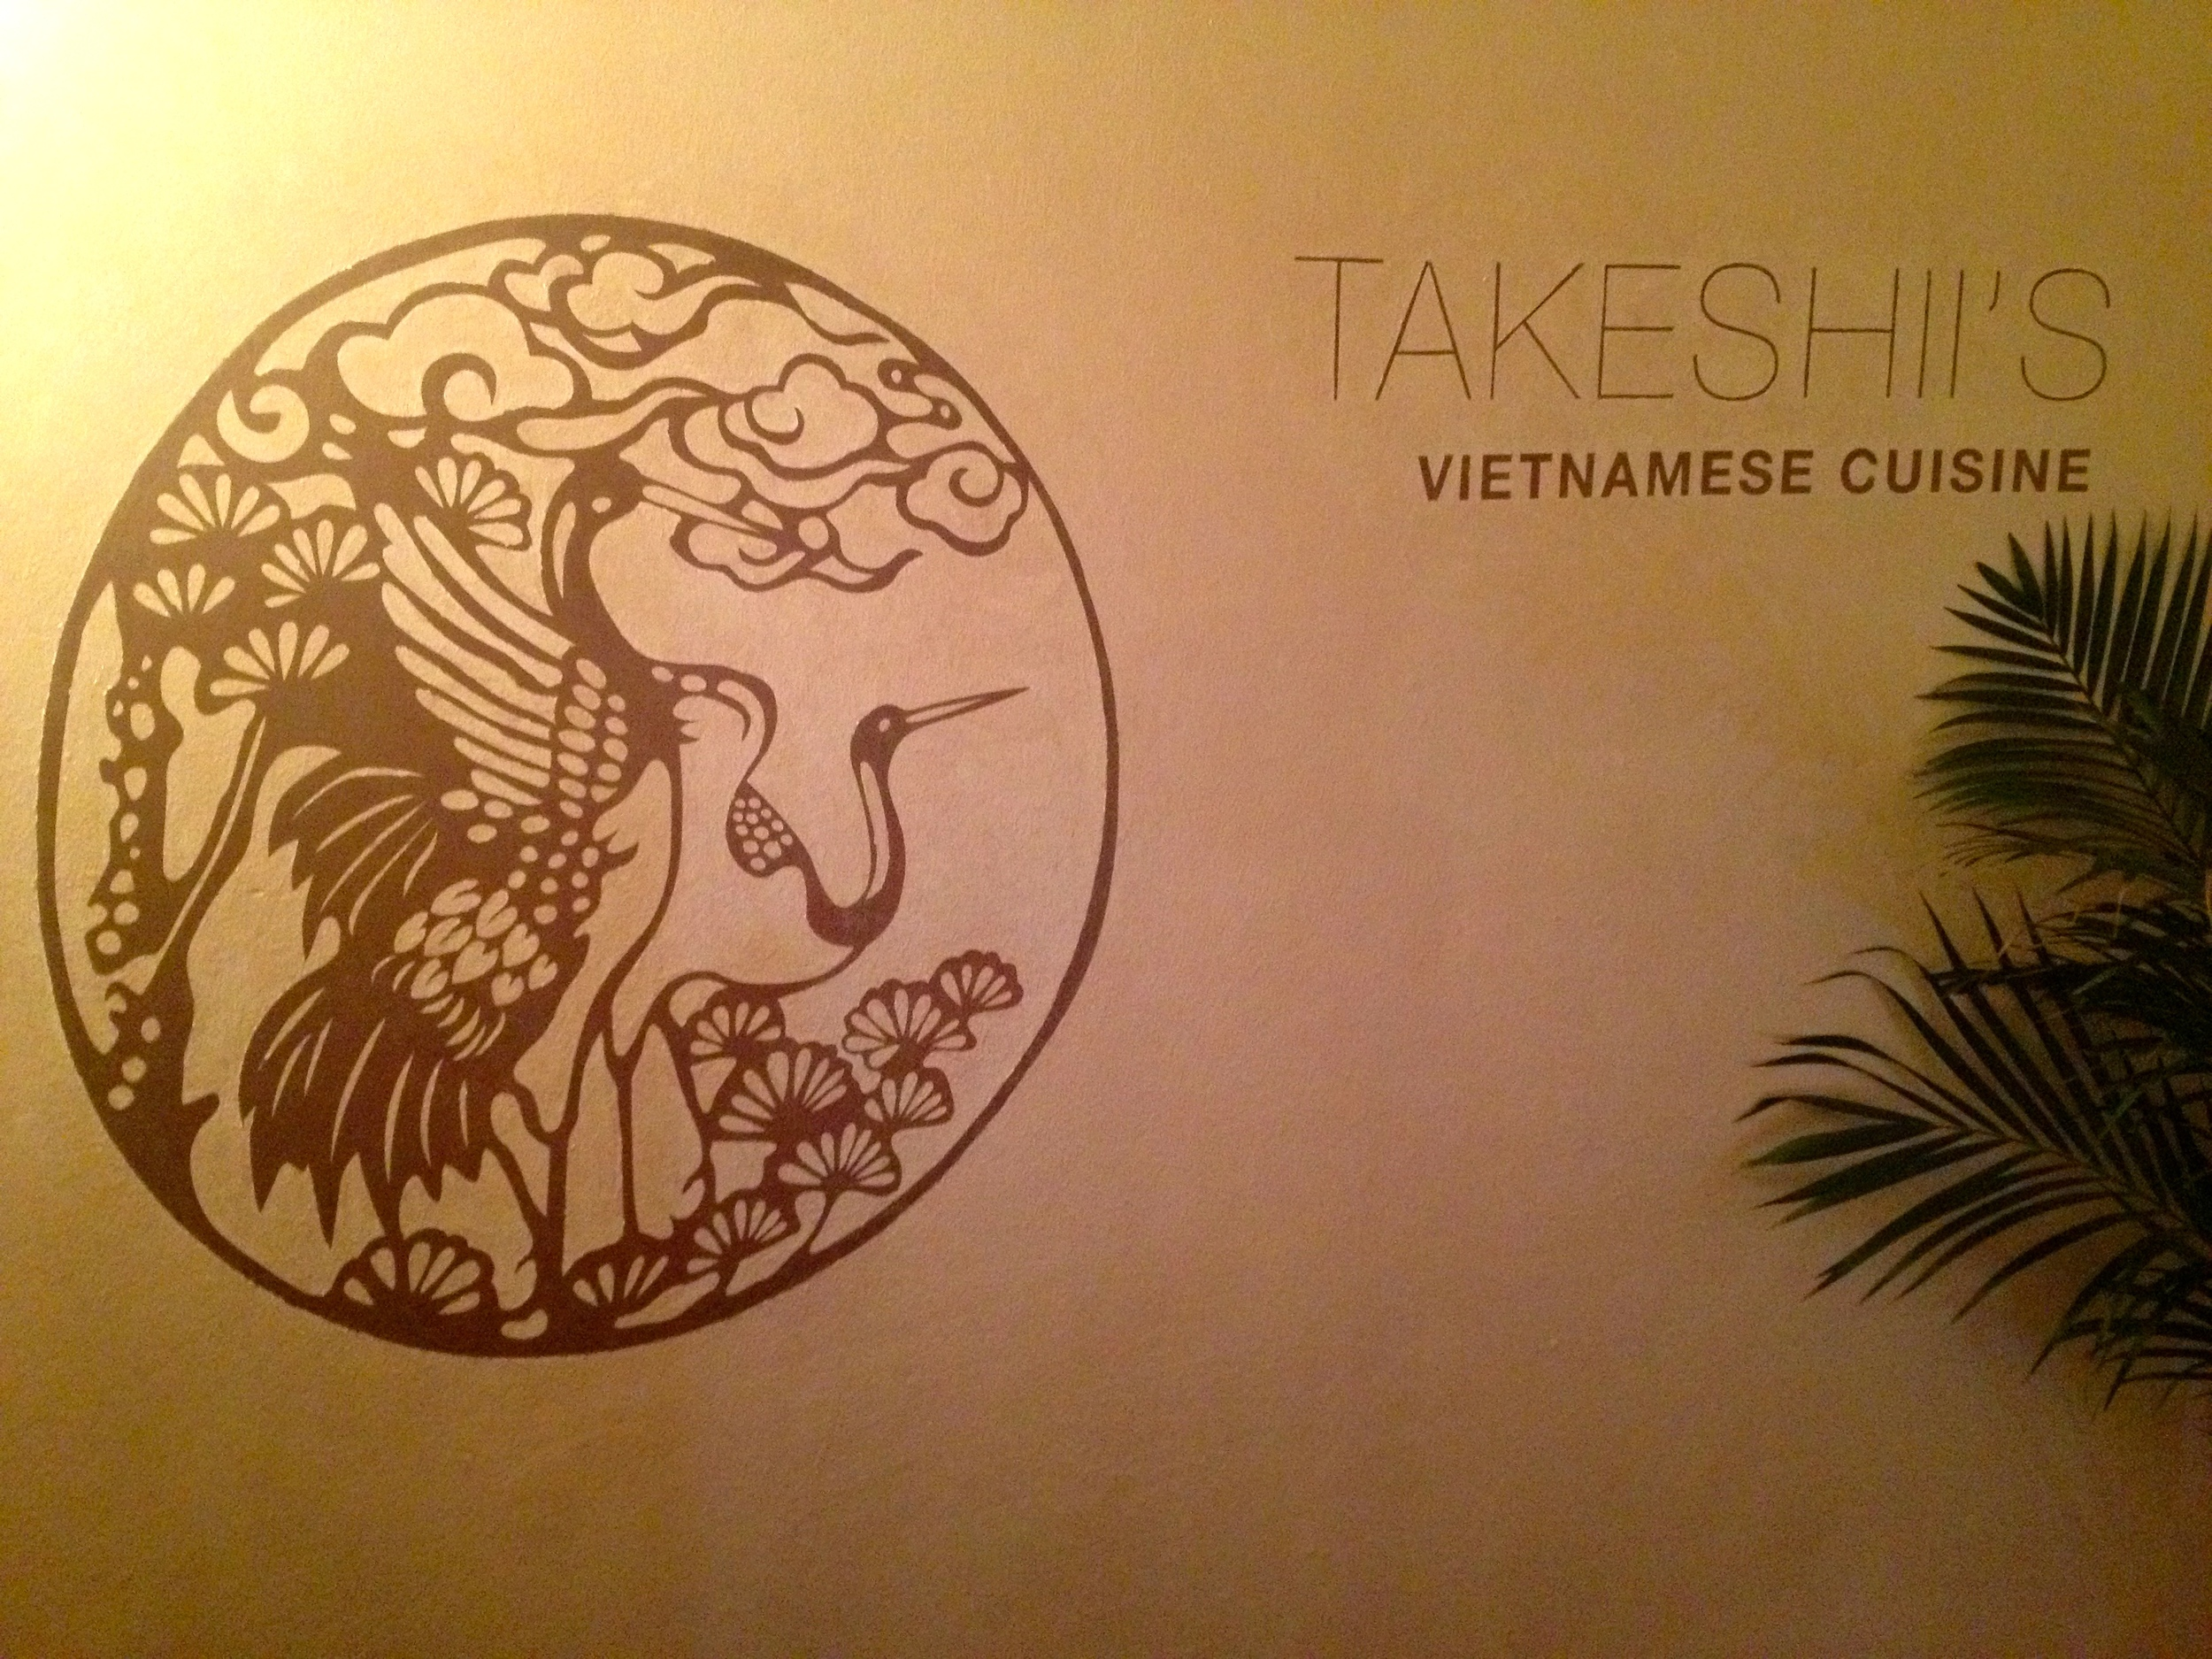 The restaurant's logo inside